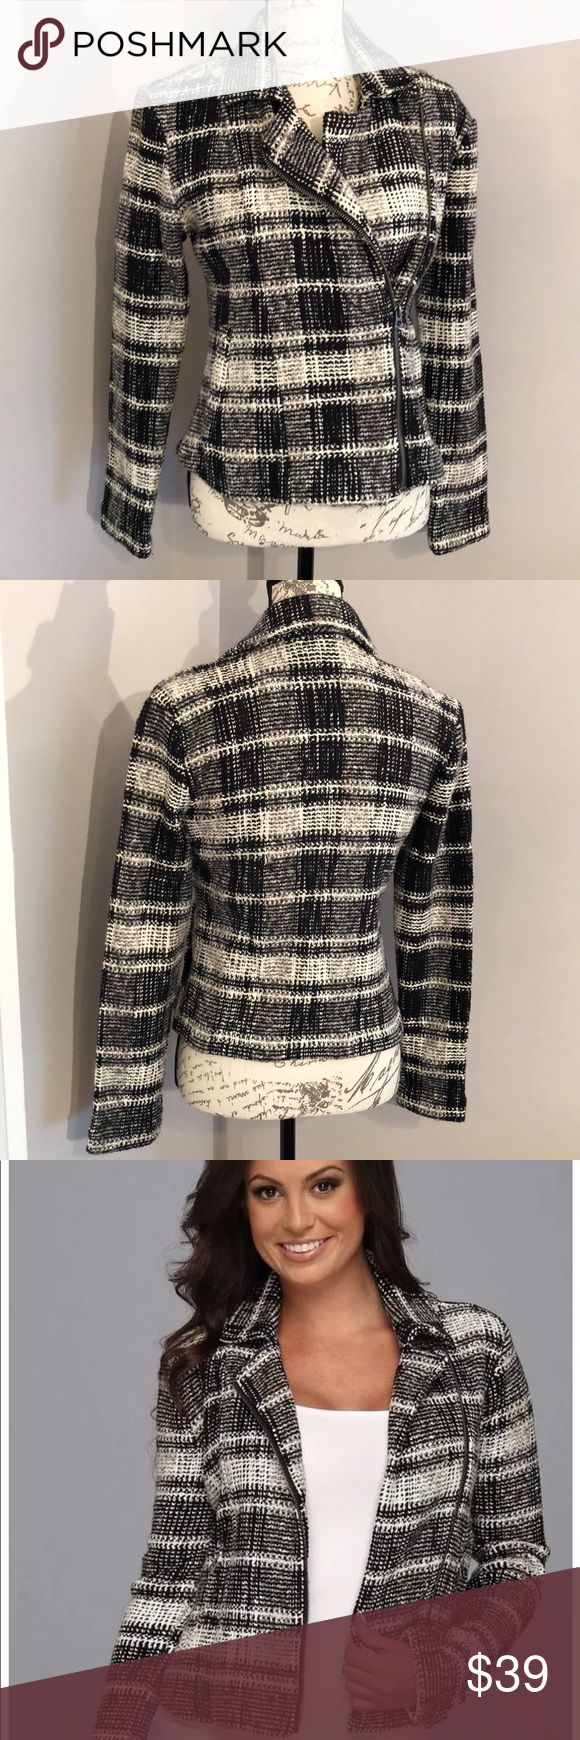 Lucky Brand Women's Moto Zip Up Sweater SZ S EUC EXCELLENT USED CONDITION Lucky Brand Women's Plaid Moto Zip Up Sweater  SZ S Color Black, Cream, Gray Please see all photos for measurements/details as well as general condition. No stains, pilling or excessive signs or wear. All measurements are taken flat and are approximate.  Item is from a clean and smoke free environment. ✖️✖️✖️NO TRADES✖️✖️✖️ 😊Questions/Offers Welcome! 😊 Lucky Brand Sweaters Cardigans